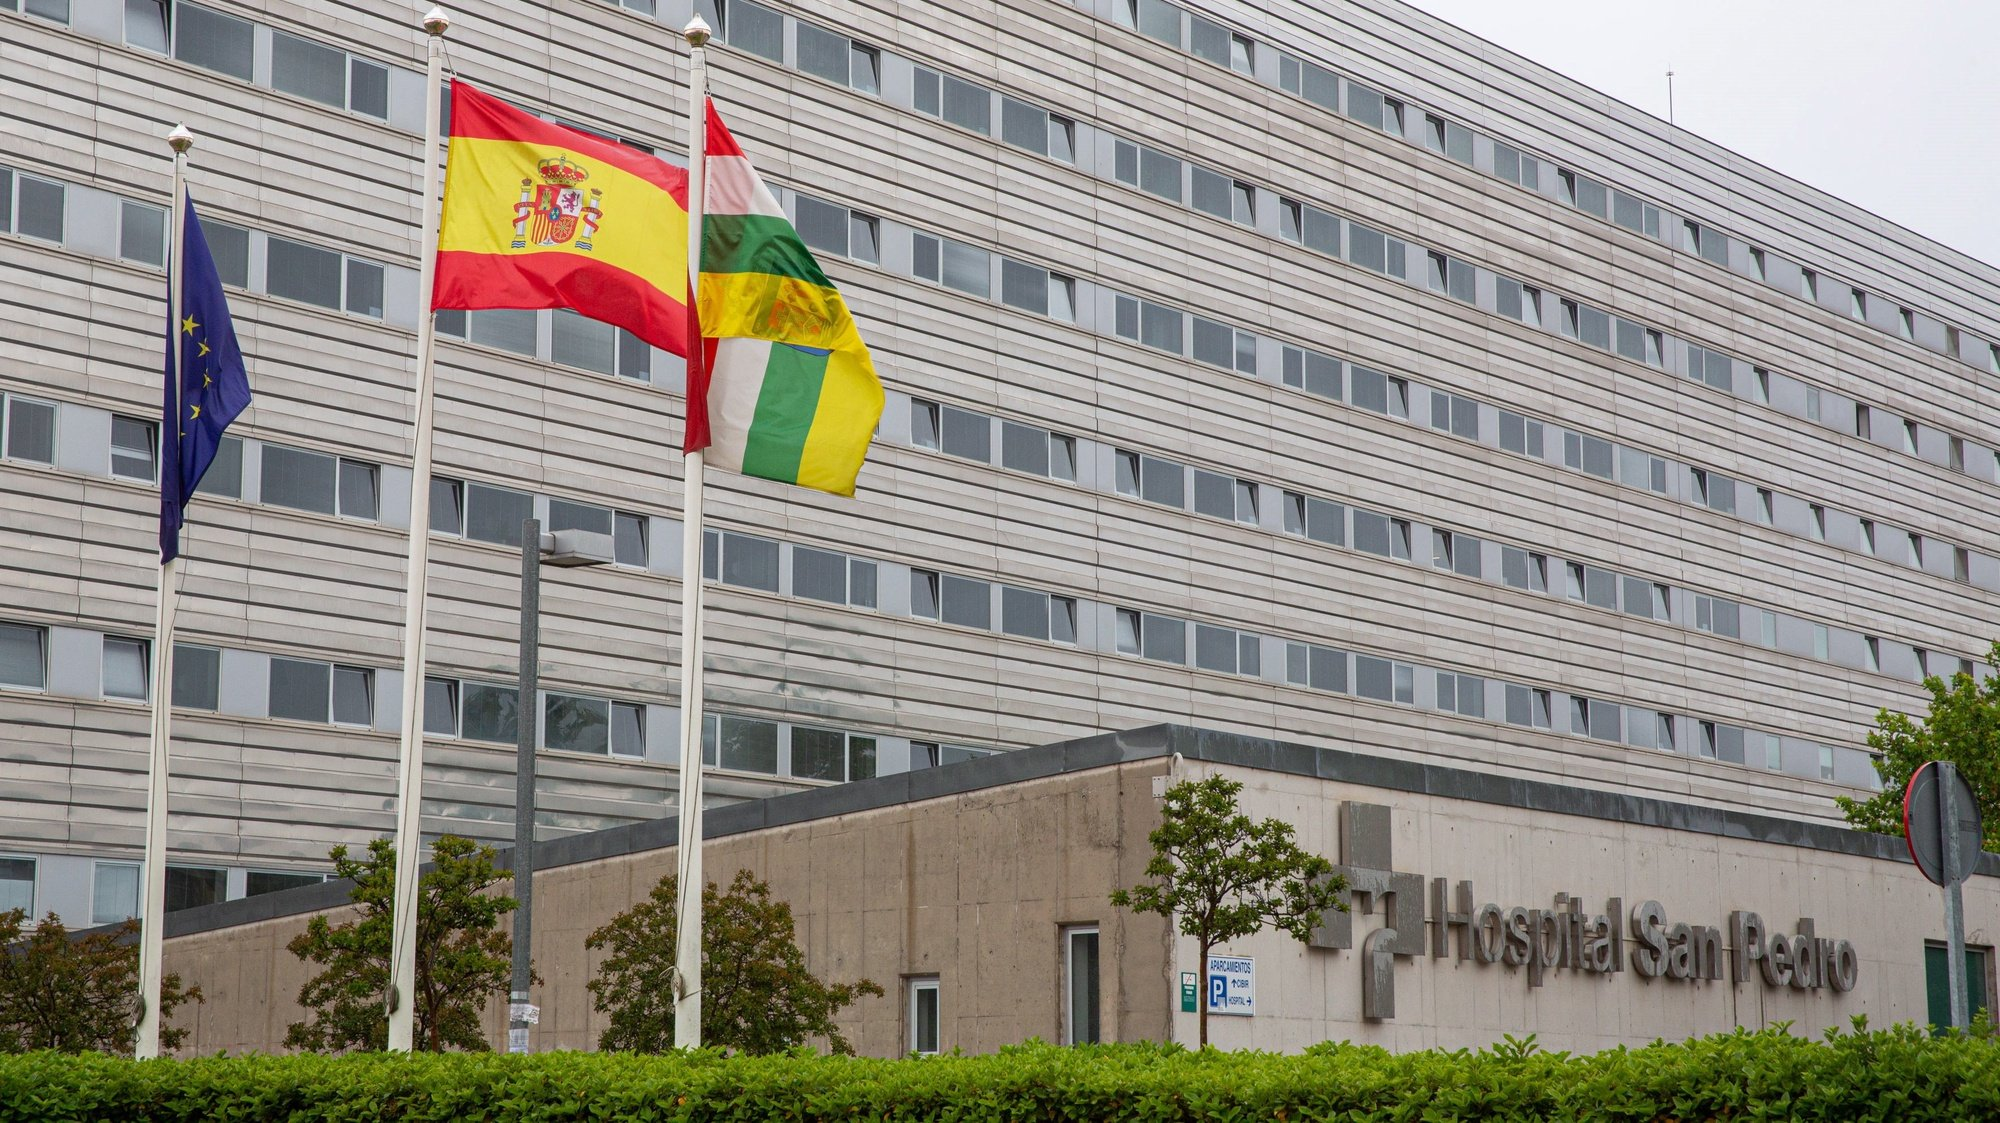 epa09240680 An exterior view of the Hospital San Pedro in Logrono, Spain, 01 June 2021, where the Secretary-General of the Polisario Front, Brahim Ghali, is being treated. Ghali will be declaring before the Audiencia Nacional Judge for the first time on 01 June 2021, in relation to the investigation of two complaints against him for genocide and crimes against humanity.  EPA/RAQUEL MANZANARES